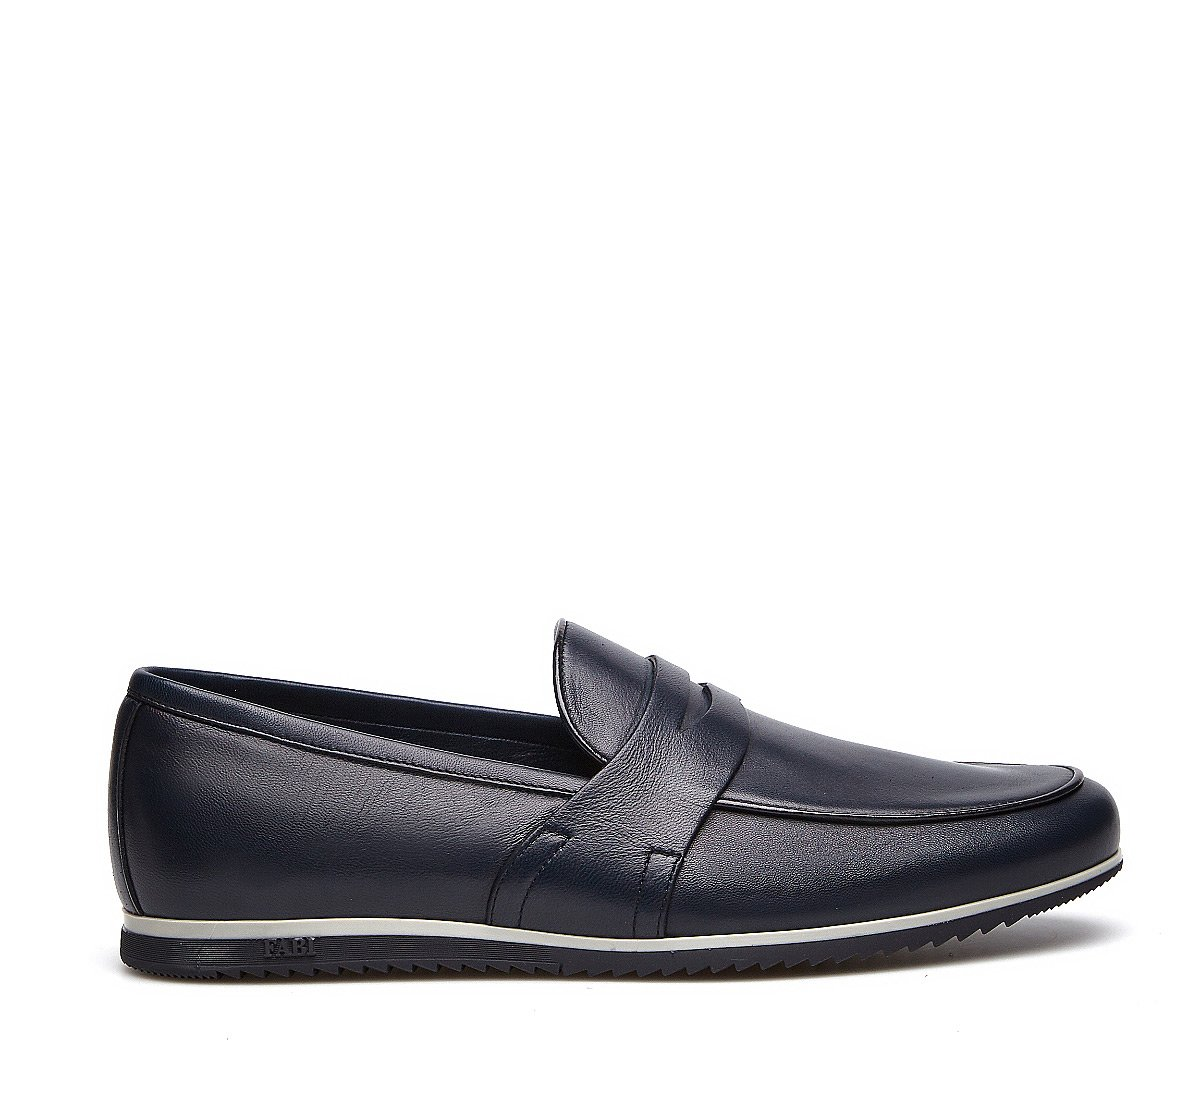 Sporty moccasins in soft nappa